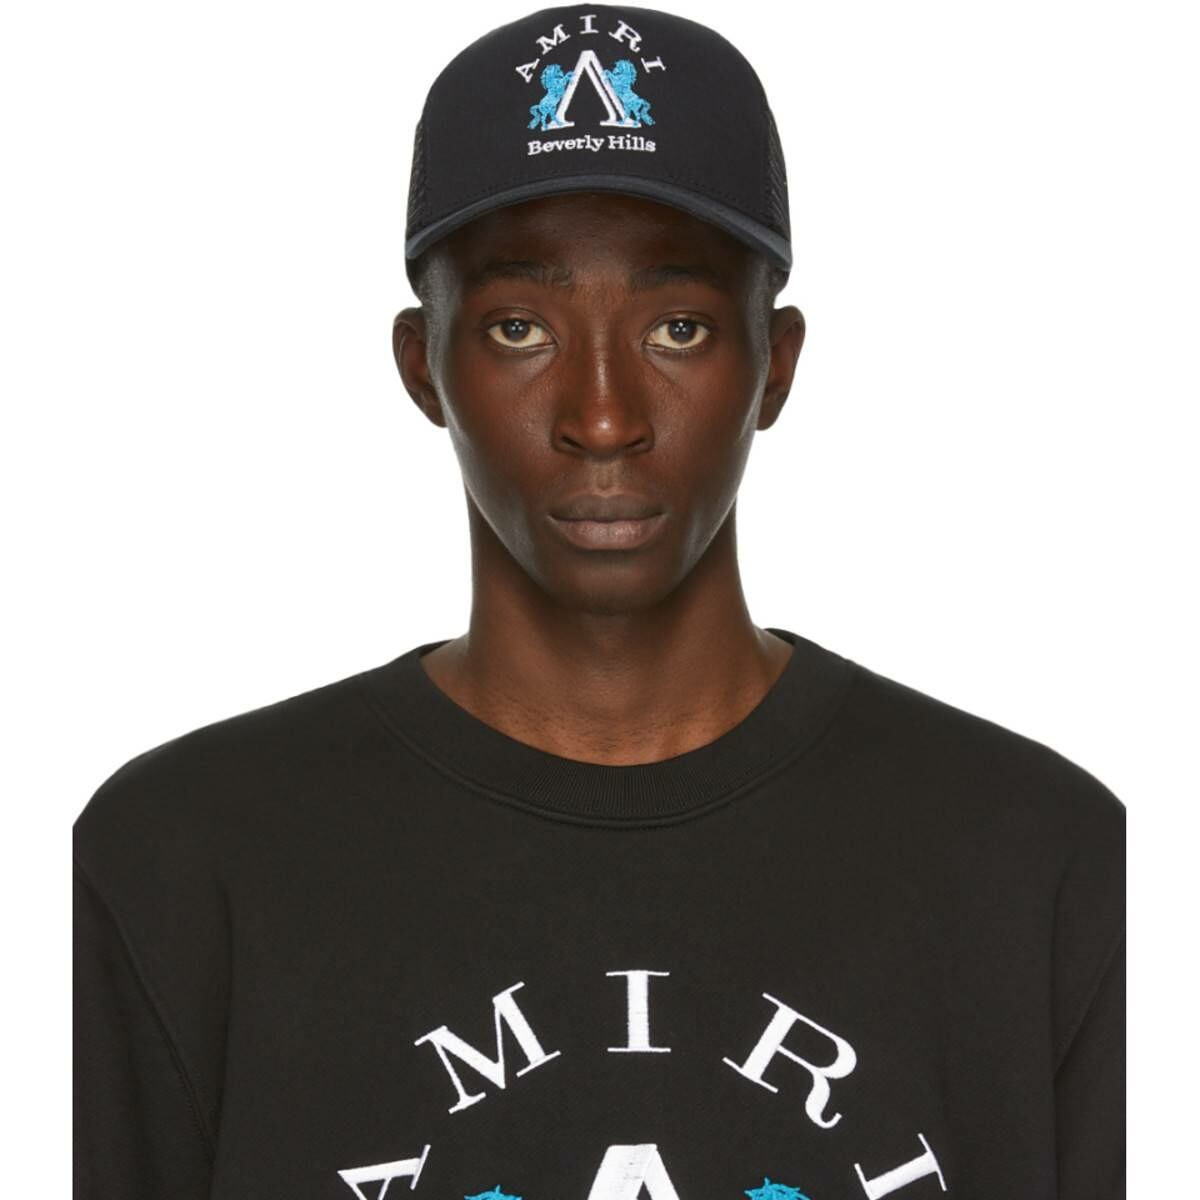 Amiri Black Beverly Hills Cap Ssense USA MEN Men ACCESSORIES Mens CAPS